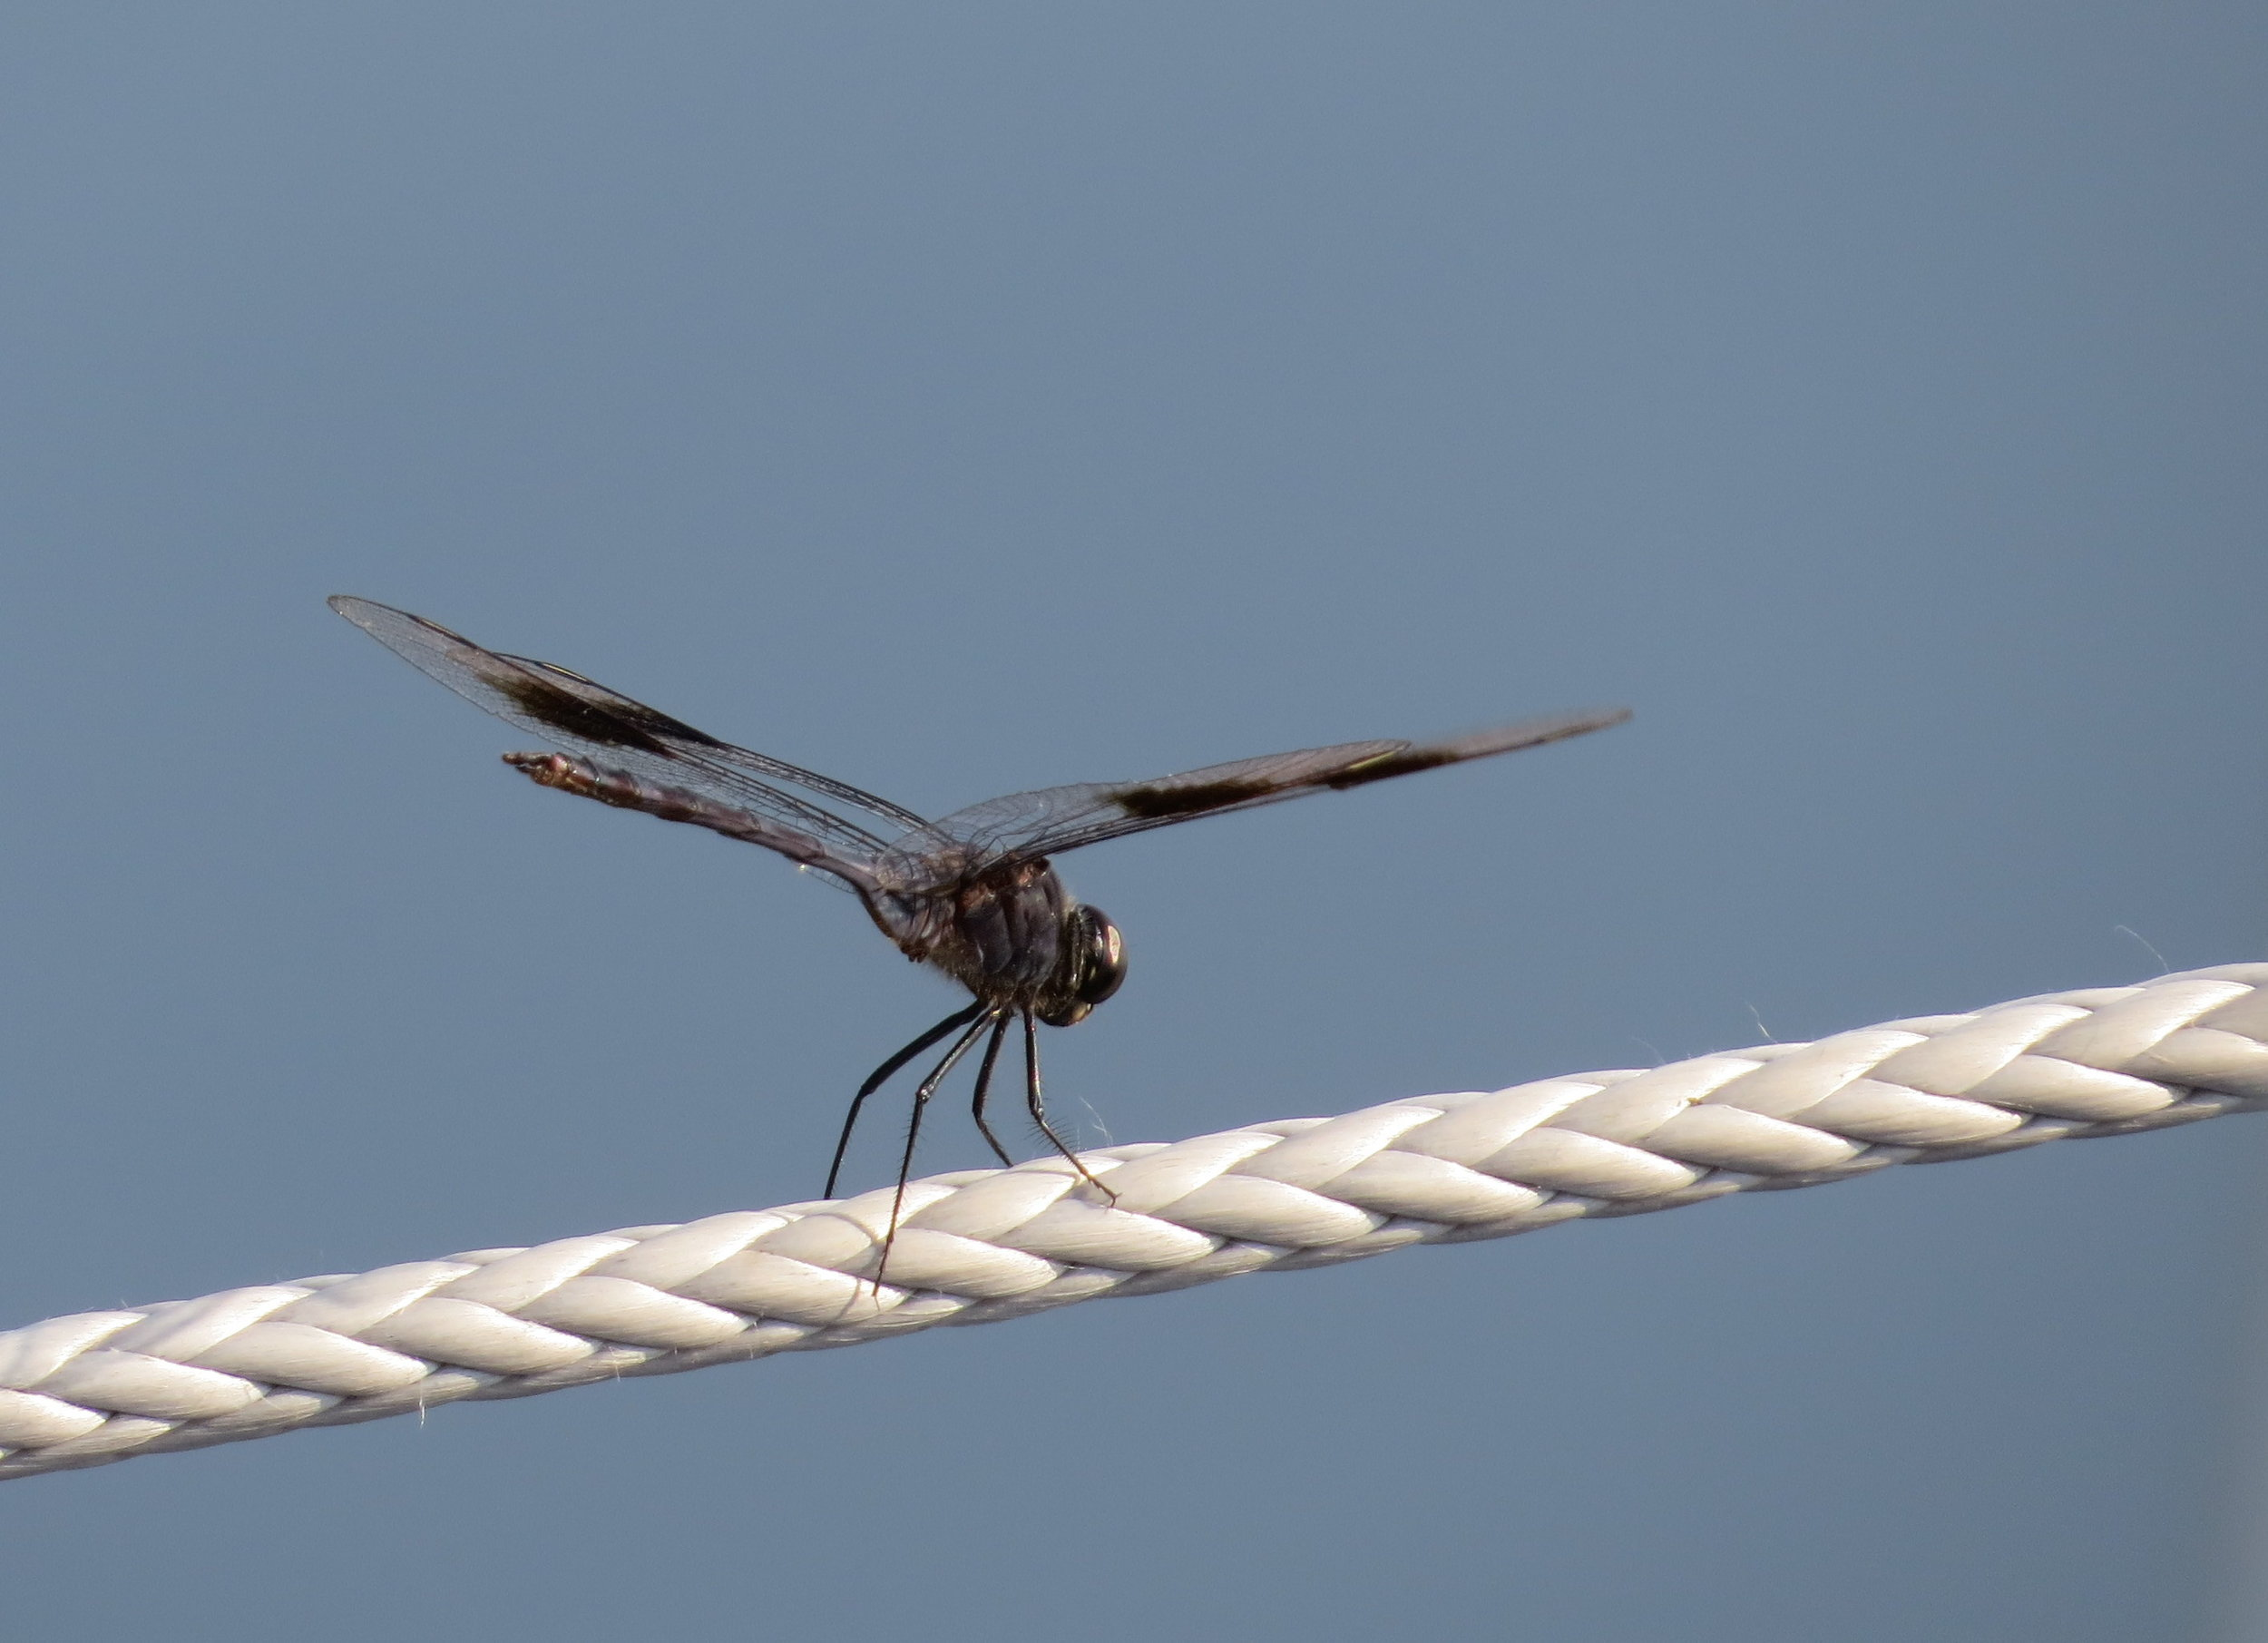 Dragonflies the size of hummingbirds